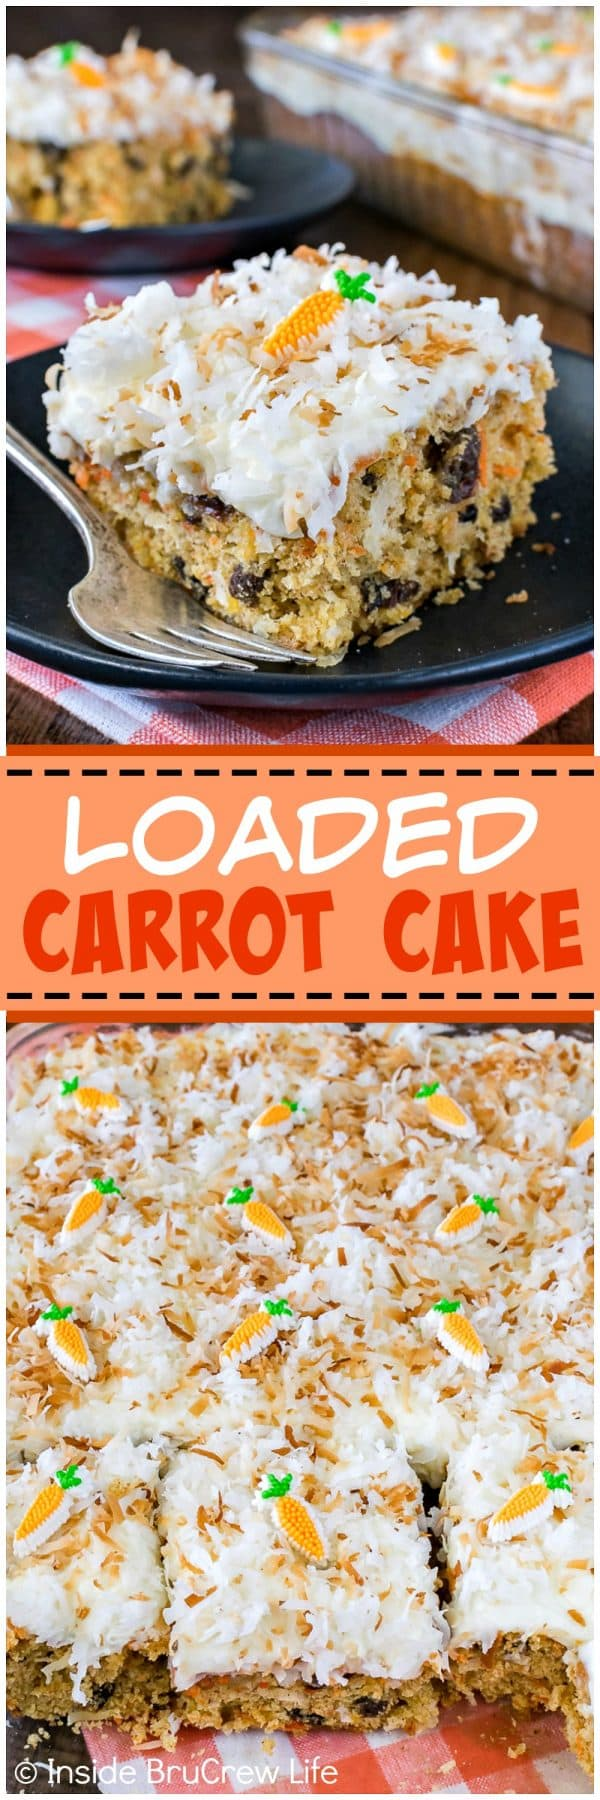 Loaded Carrot Cake - this easy homemade cake is packed full of fruit, veggies, and coconut! It's a delicious recipe to add to Easter dinner!